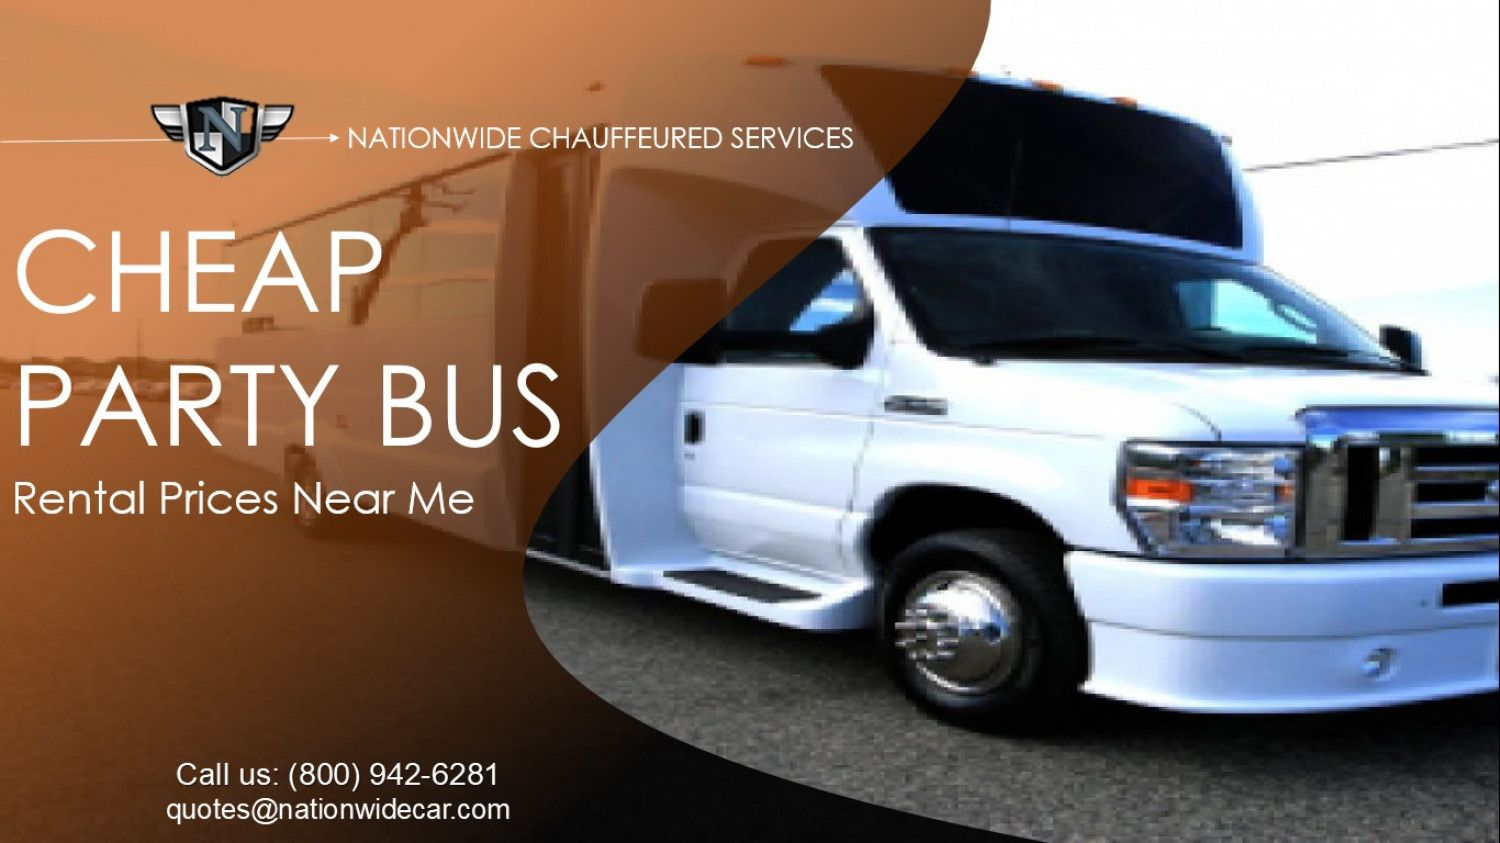 Cheap party bus rental prices near me visually